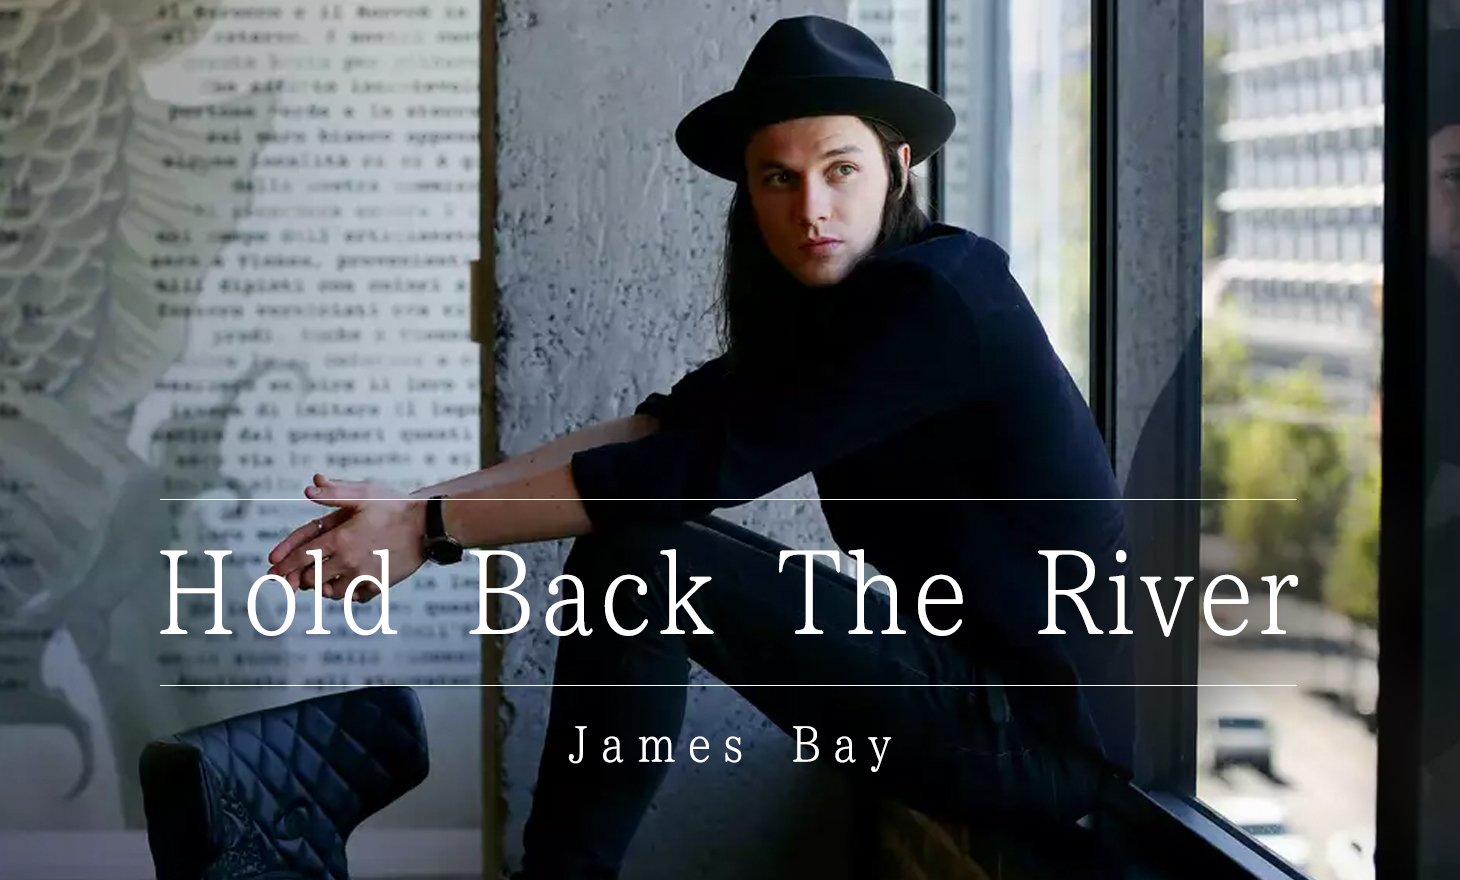 James Bay : Hold Back The River